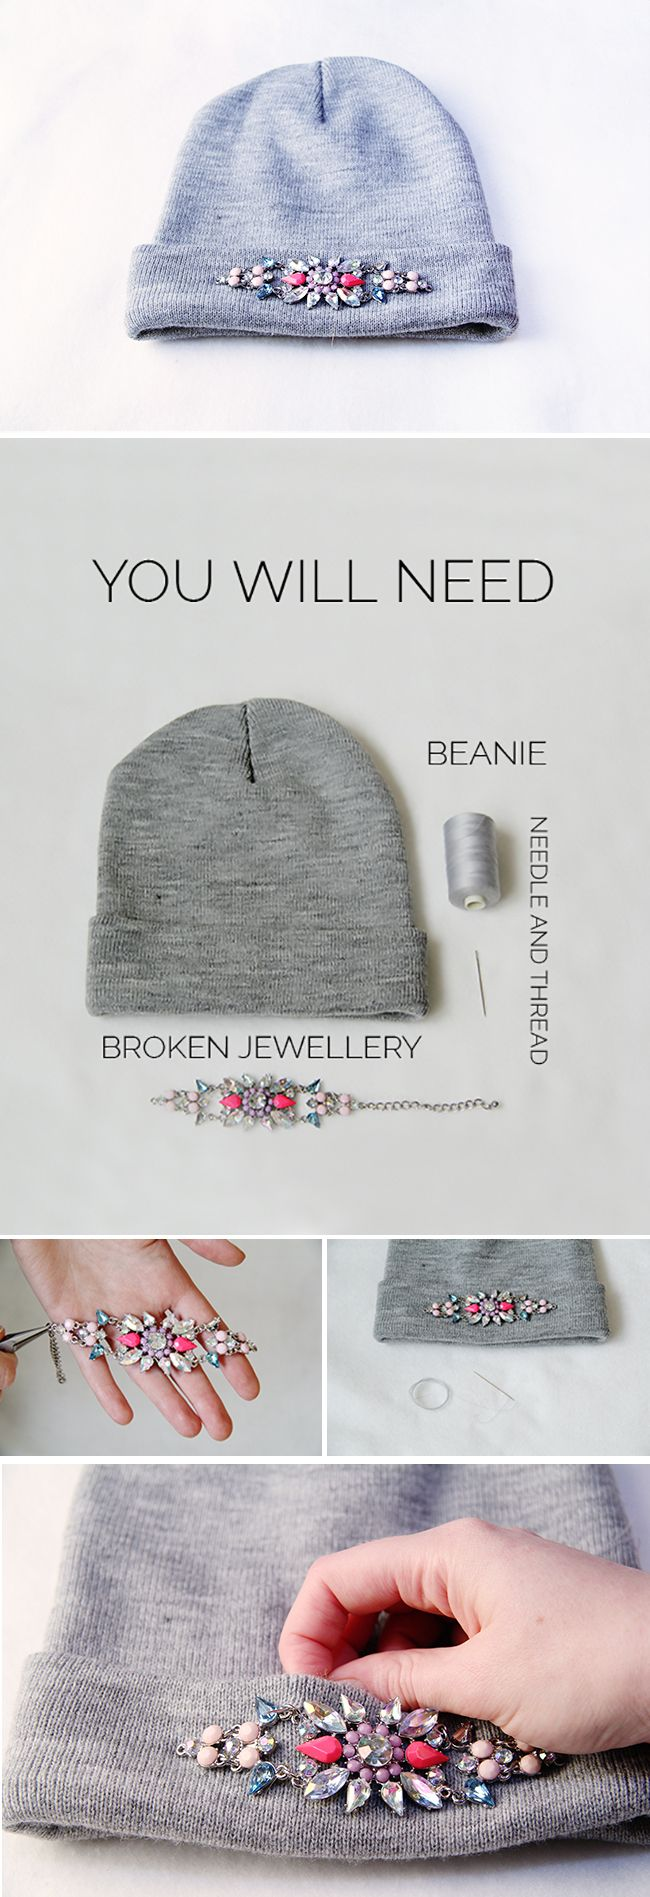 DIY: Bejeweled beanie from broken jewelry